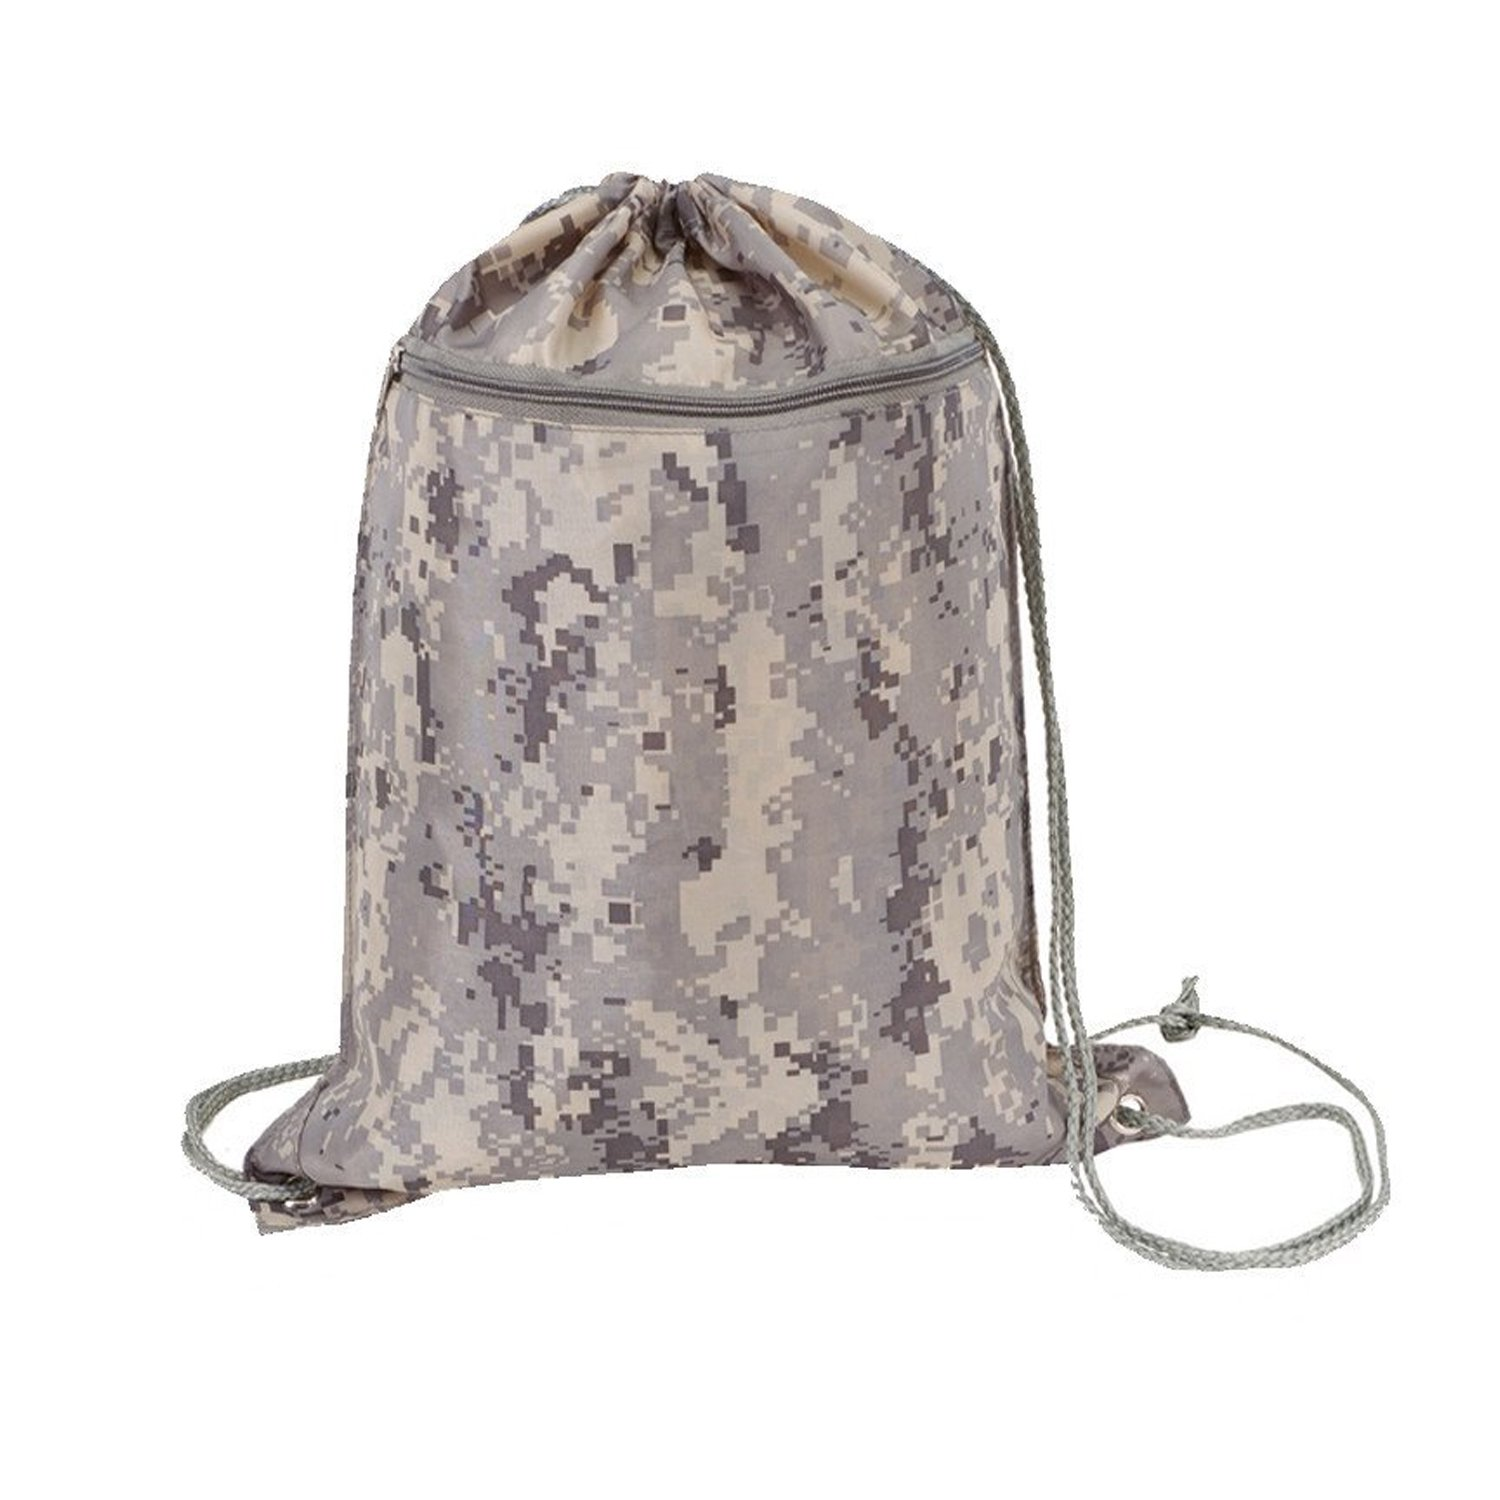 TotesRus - Well Made Roomy Durable Polyester Drawstring Backpacks with Front Zipper Pocket, Gym Bags, Sack Packs (PACK OF 48, DIGITAL-CAMO)